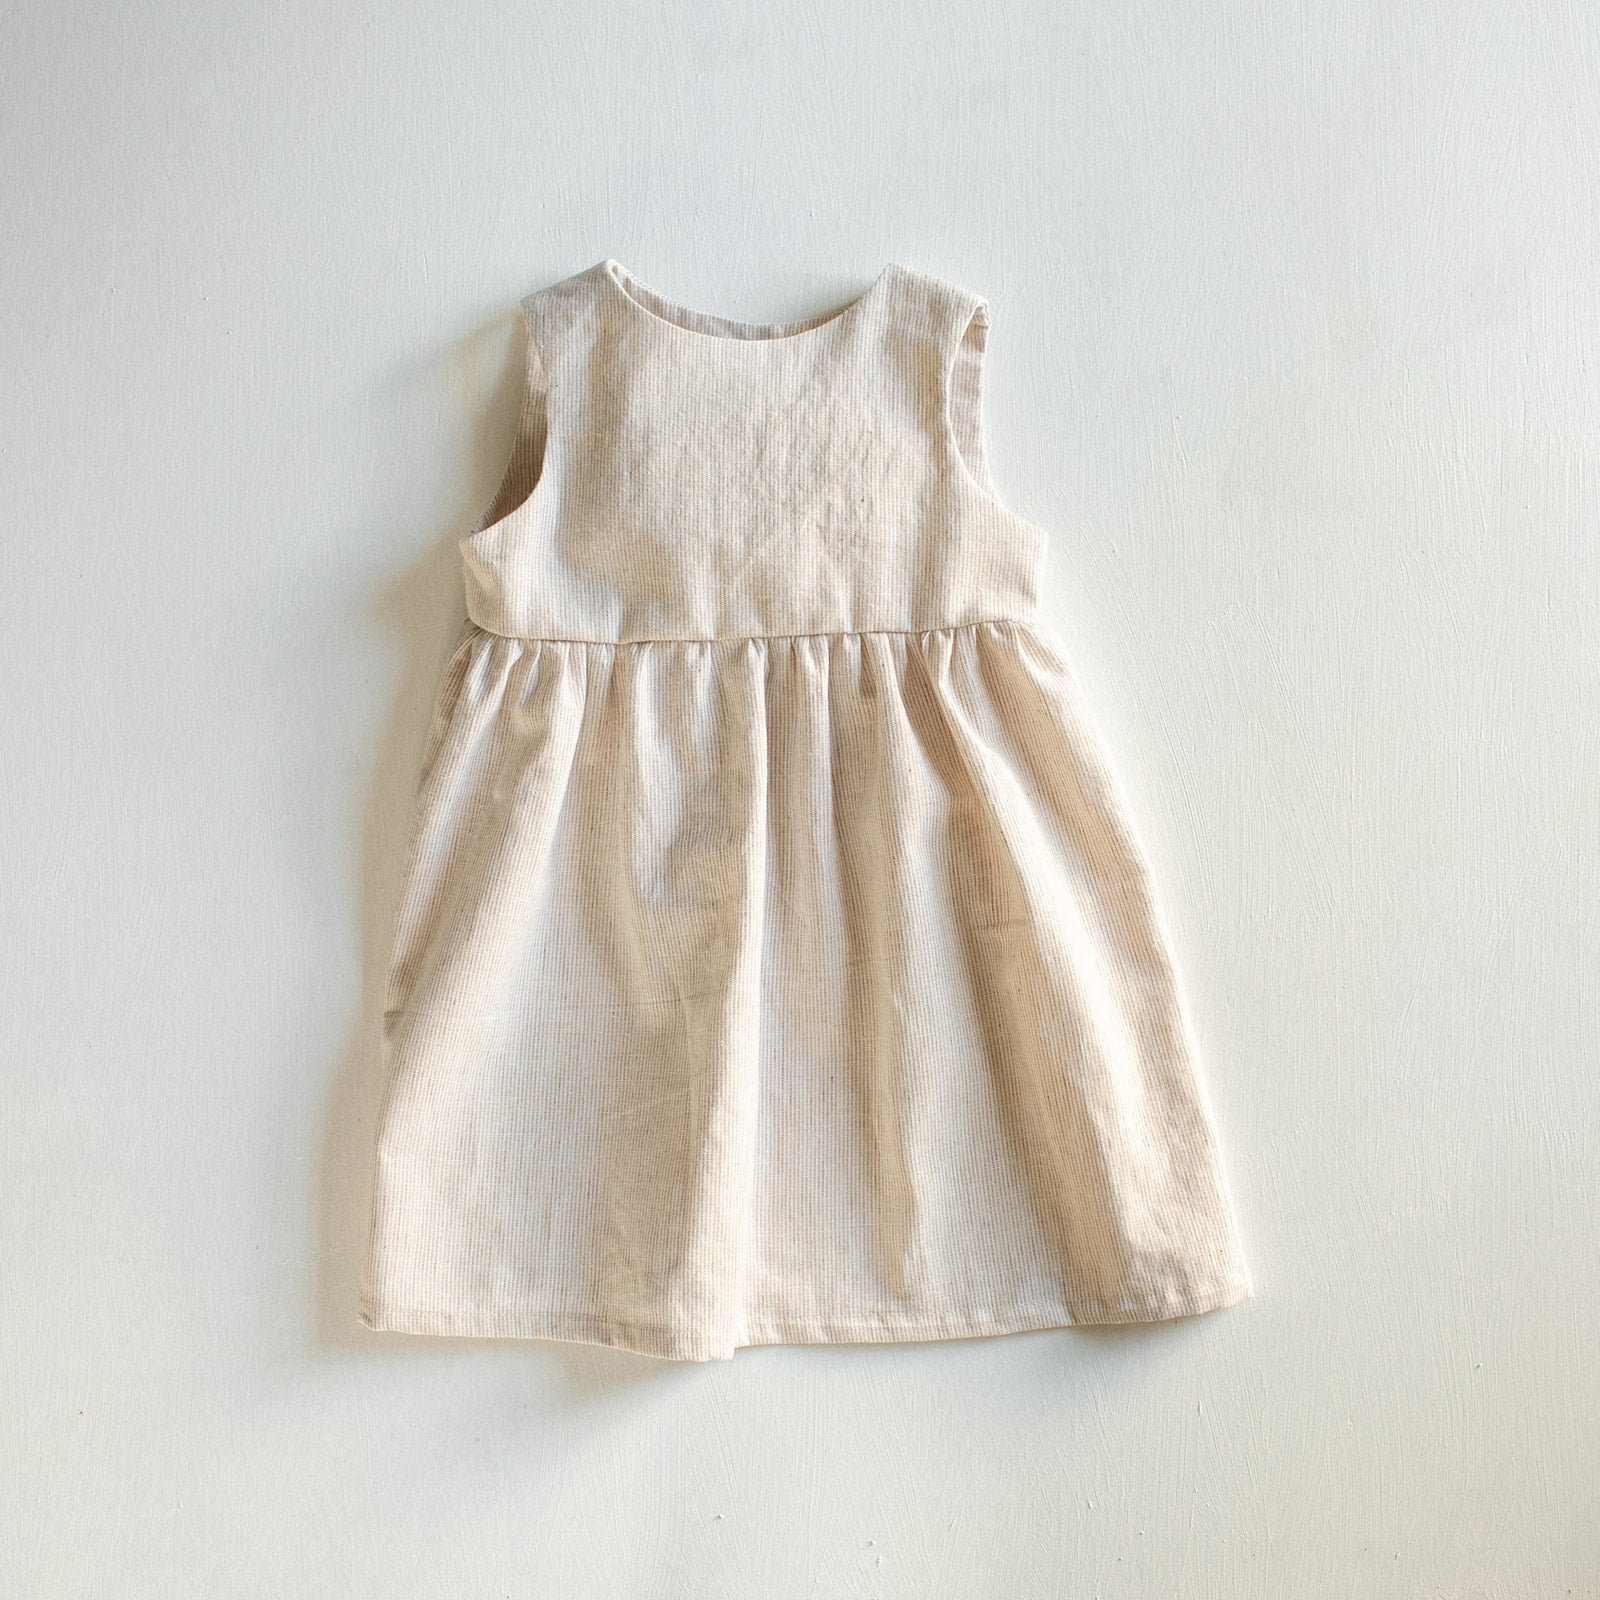 Ivory Charlotte Dress - Tortoise & the Hare Clothing